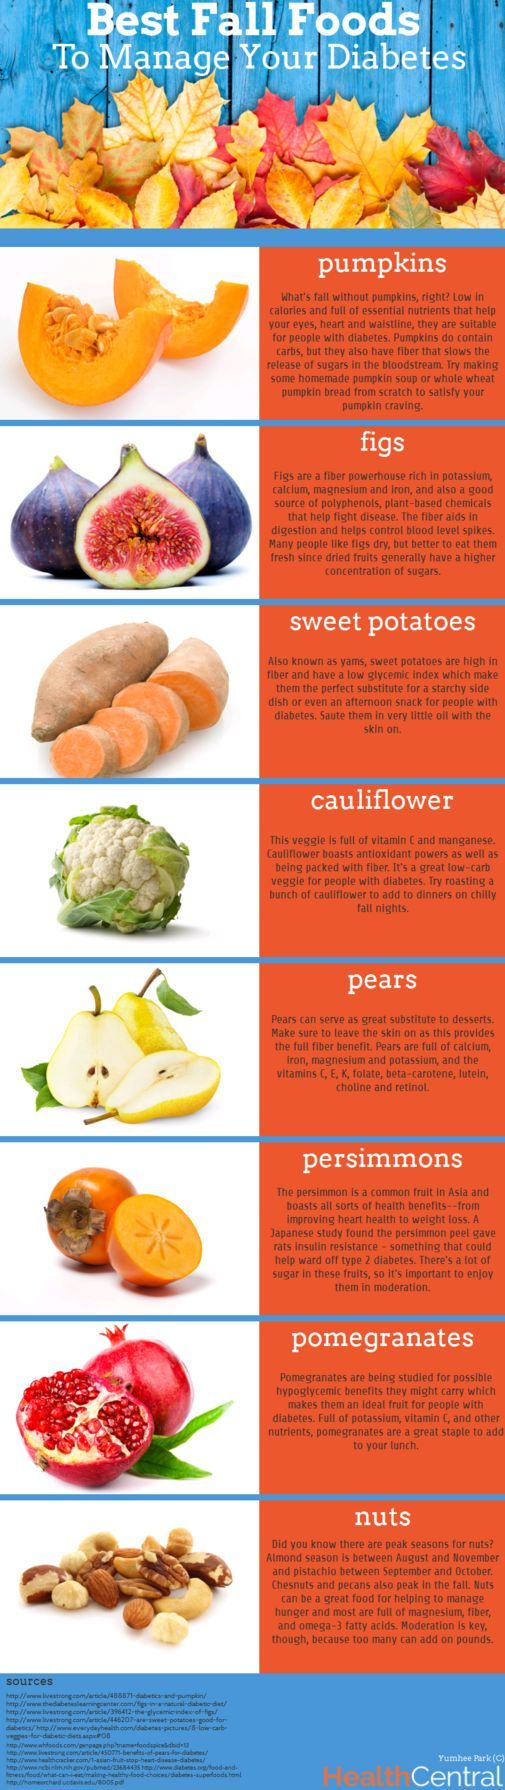 Best Fall Foods to Manage Your Diabetes (INFOGRAPHIC)